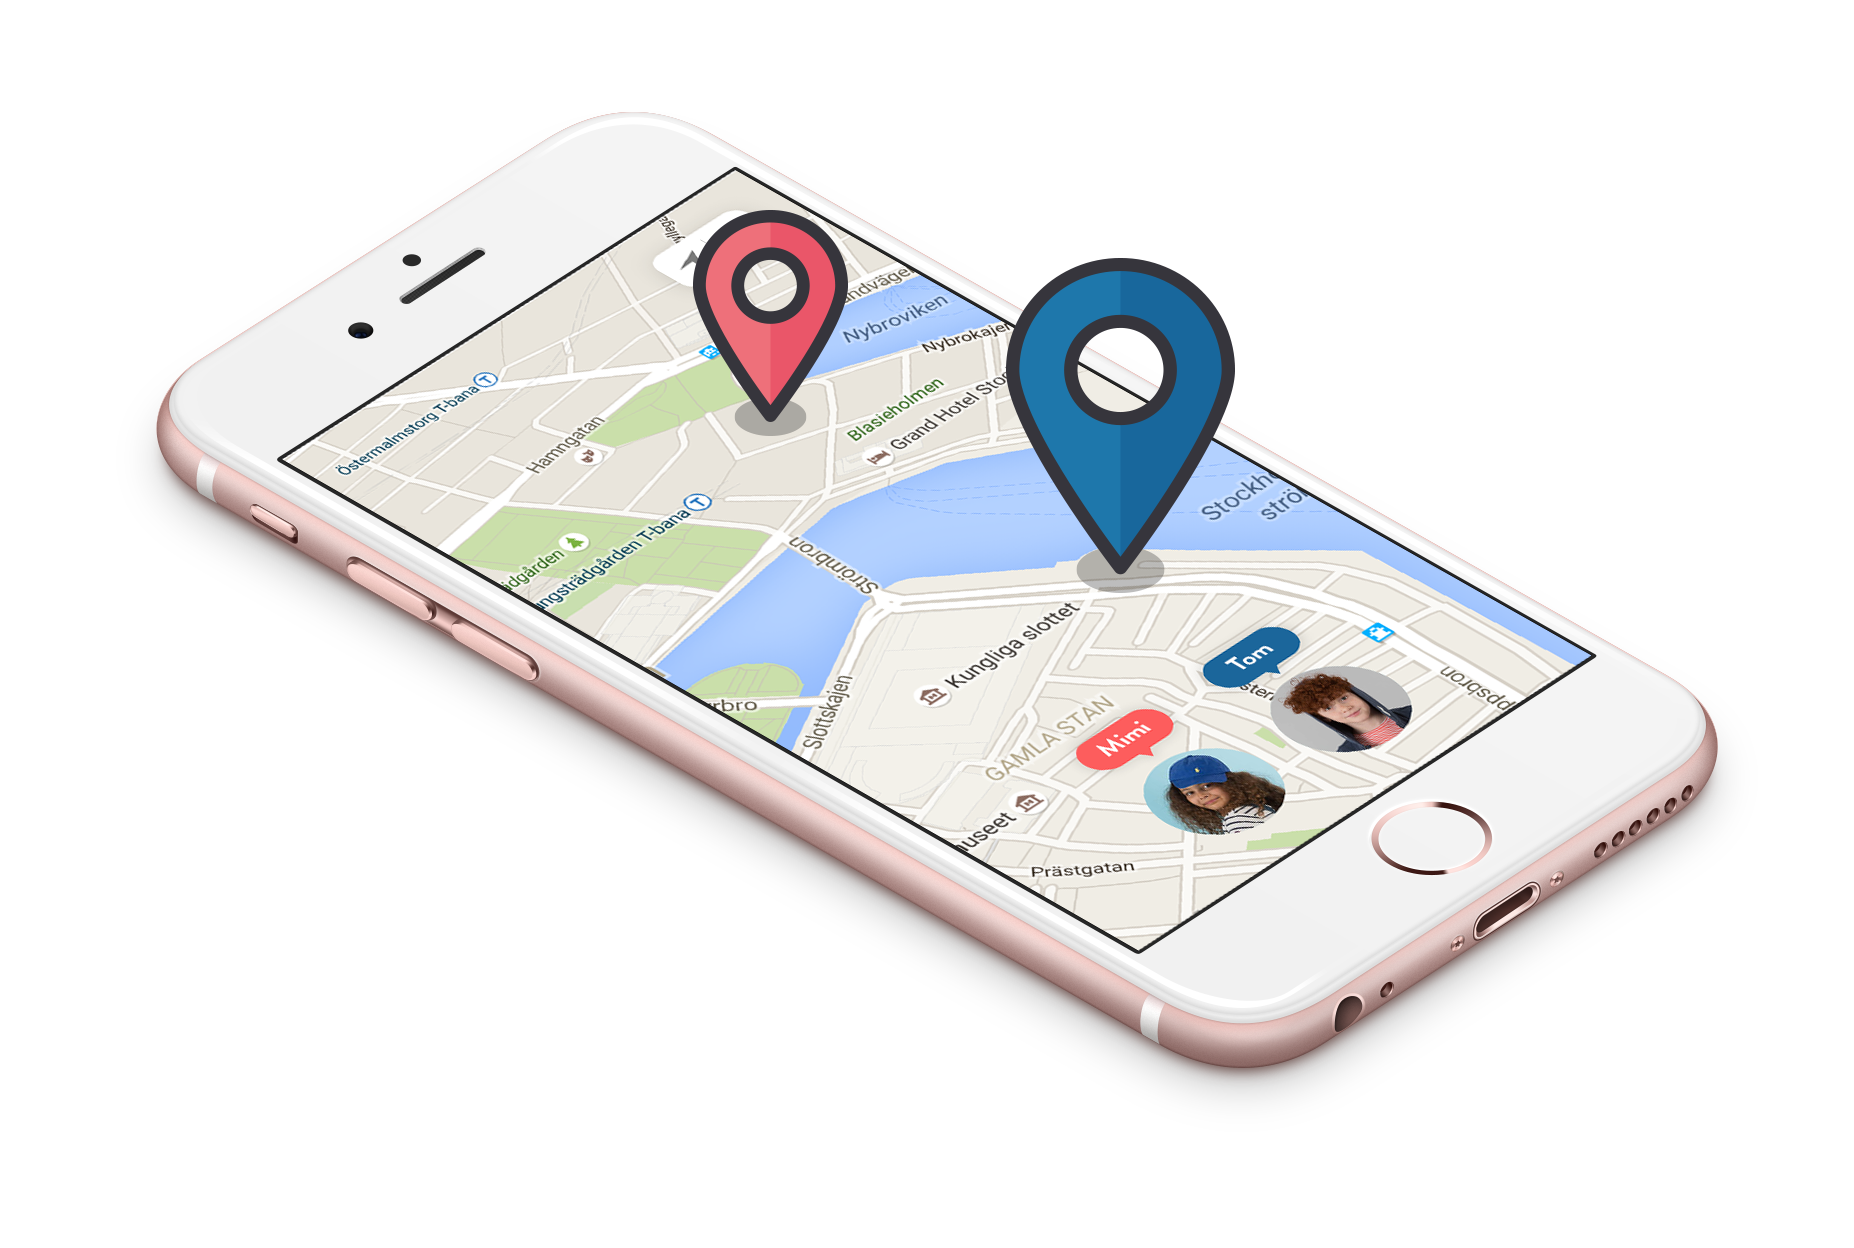 image free download Gps clipart mobile. A phone cellphone that